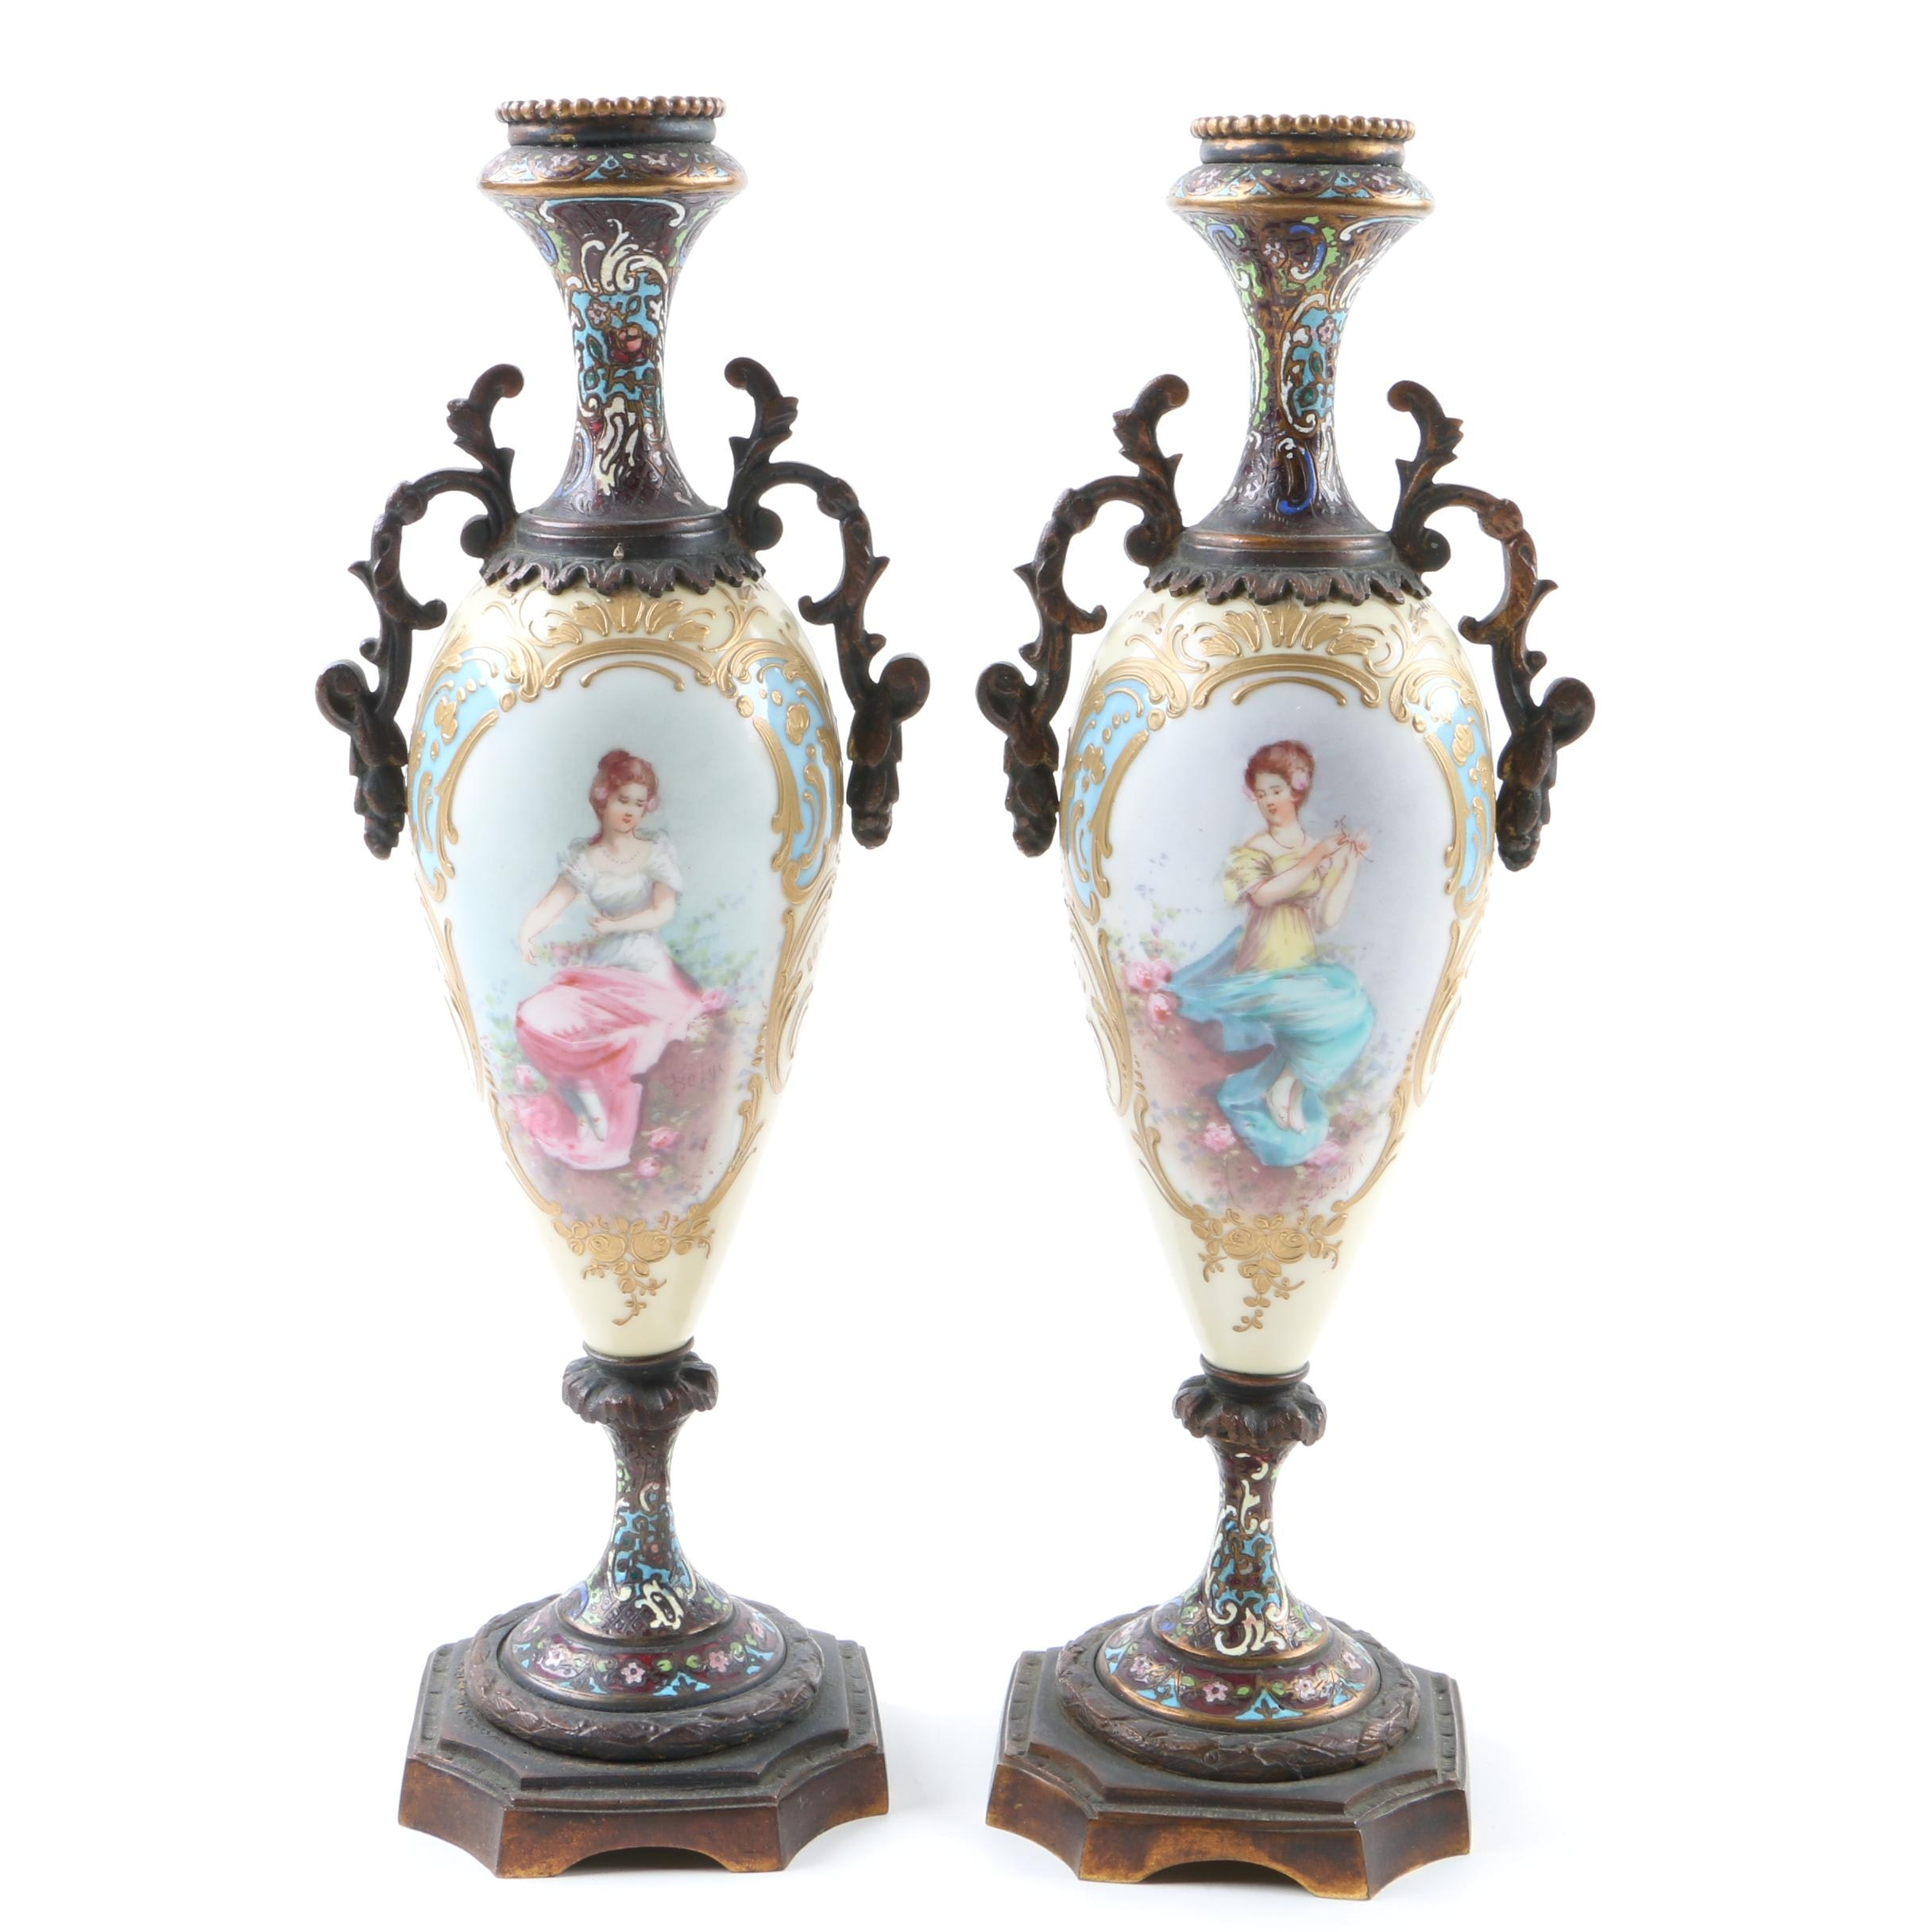 Antique French Porcelain and Champleve Enamel Urns